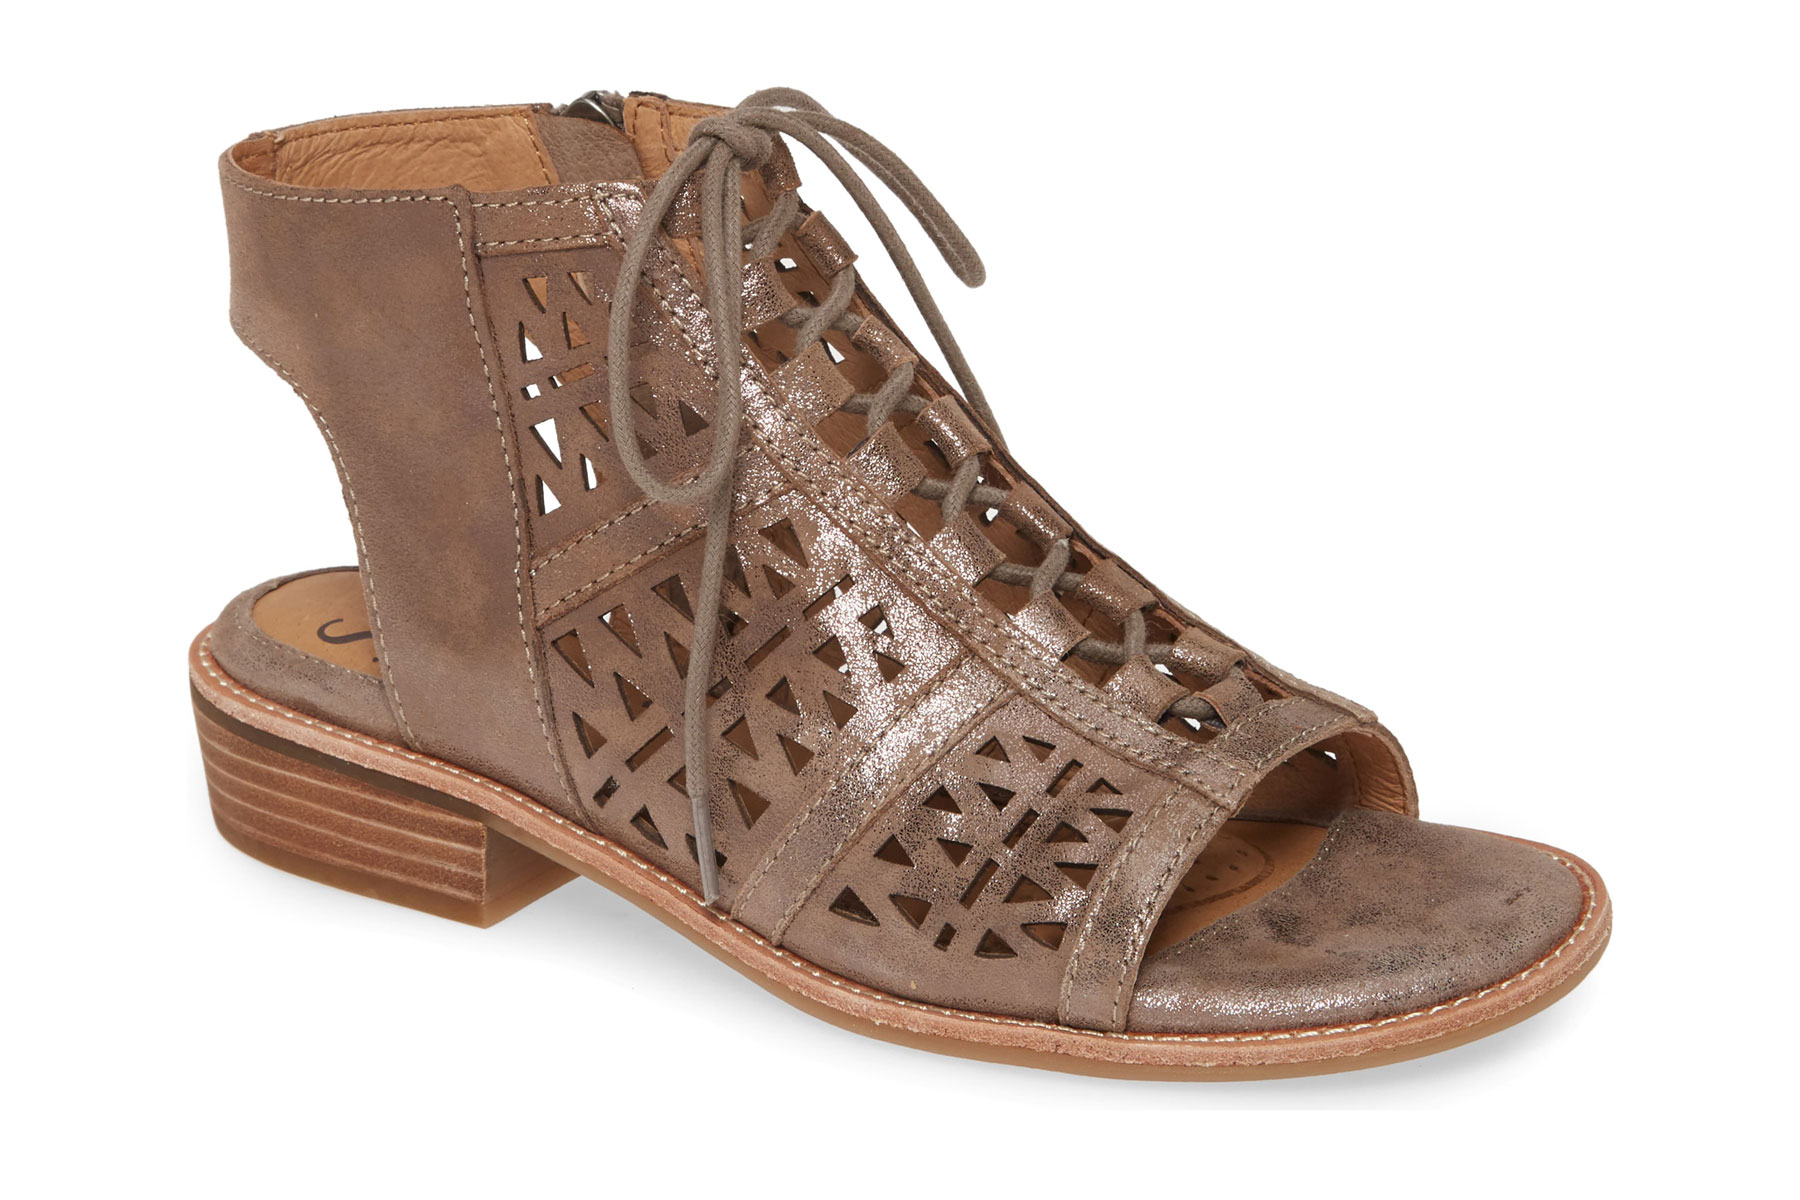 Brown leather cutout sandals